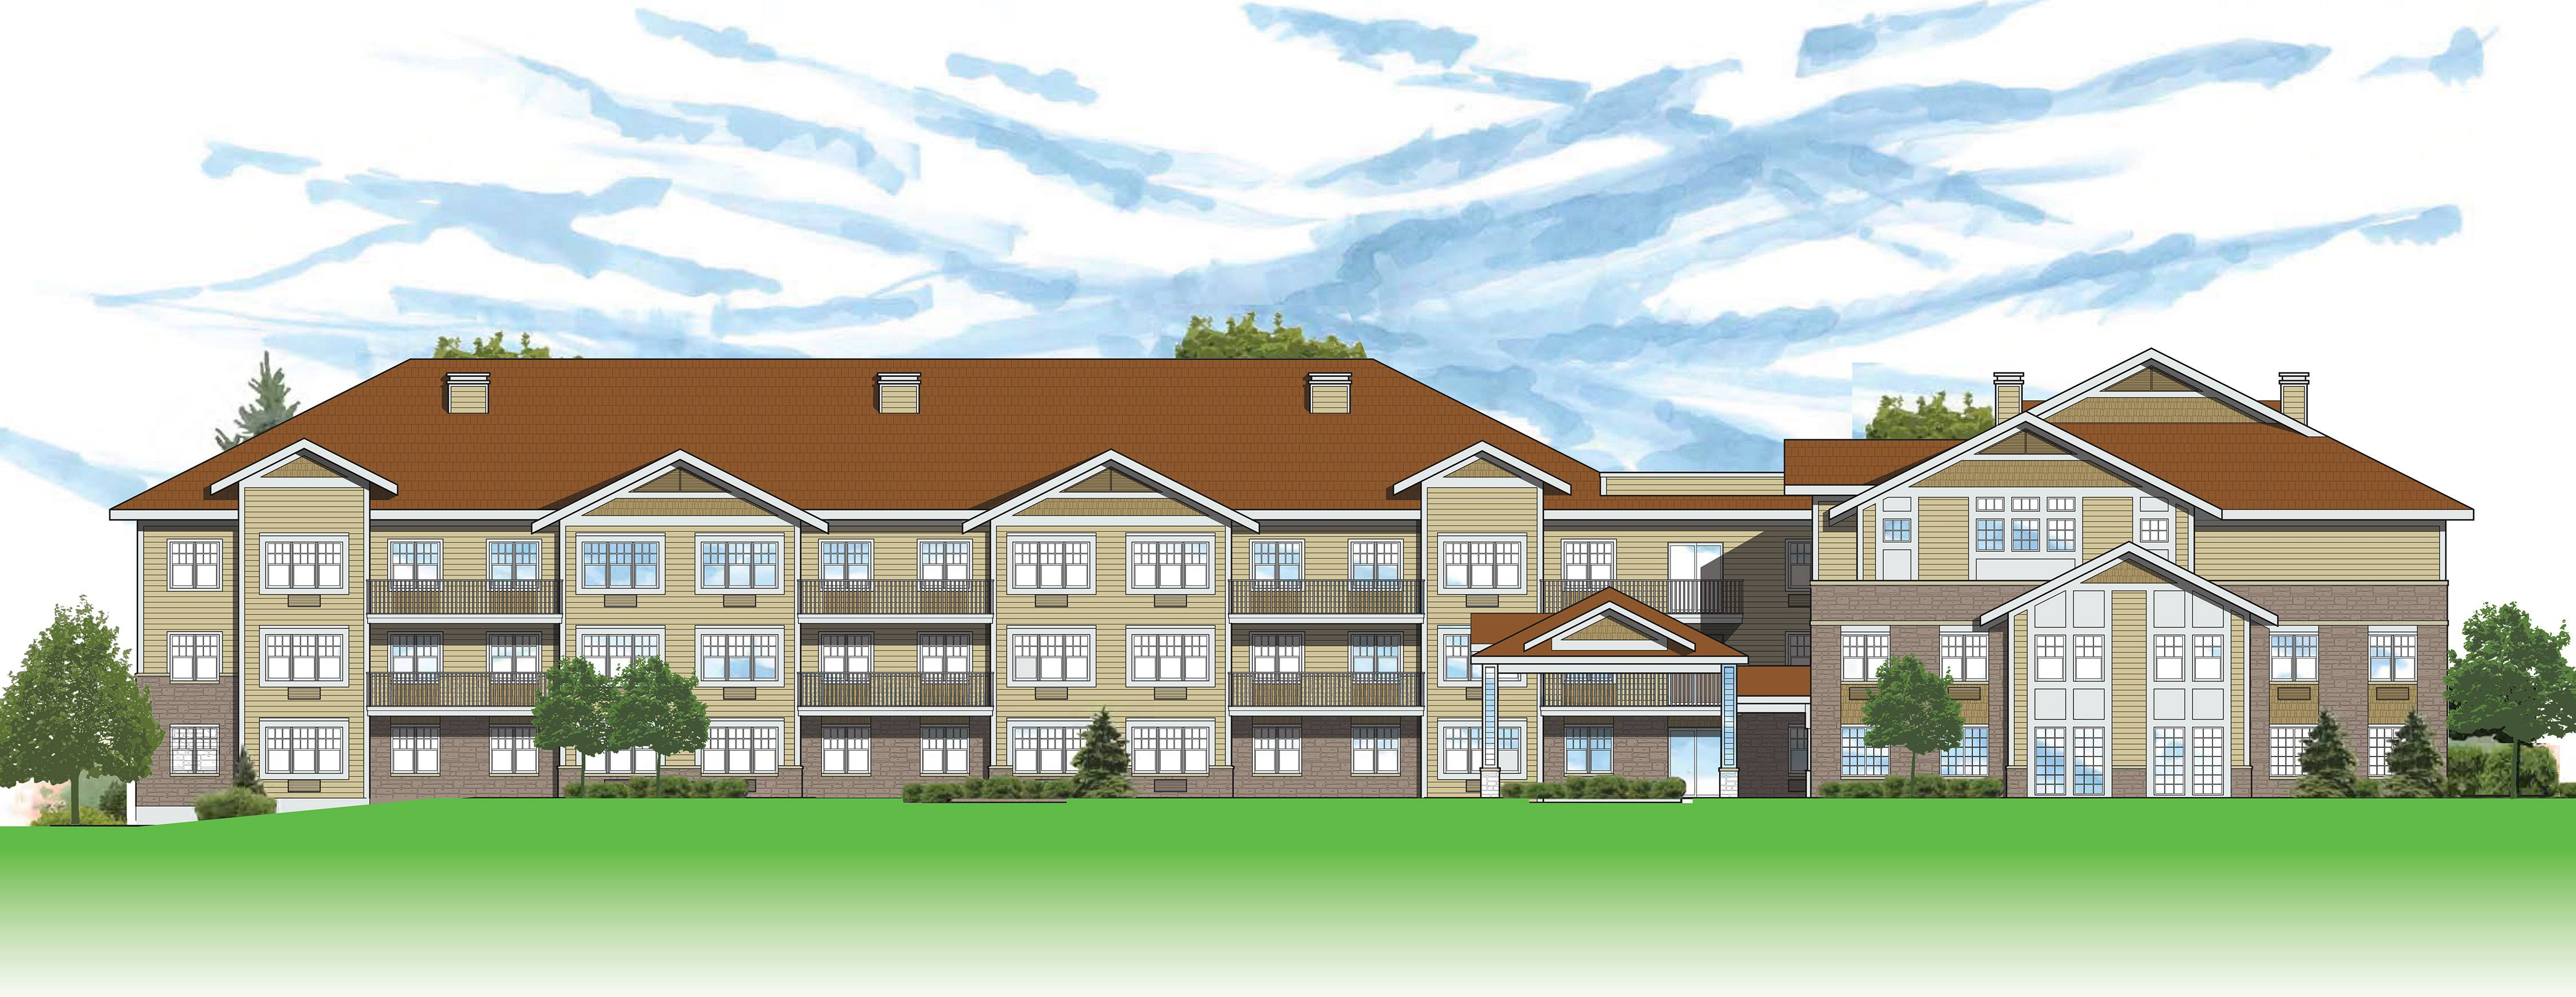 Developers are proposing building a three-story, 60-unit senior apartment complex in Algonquin at Wentworth Drive and West Algonquin Road.